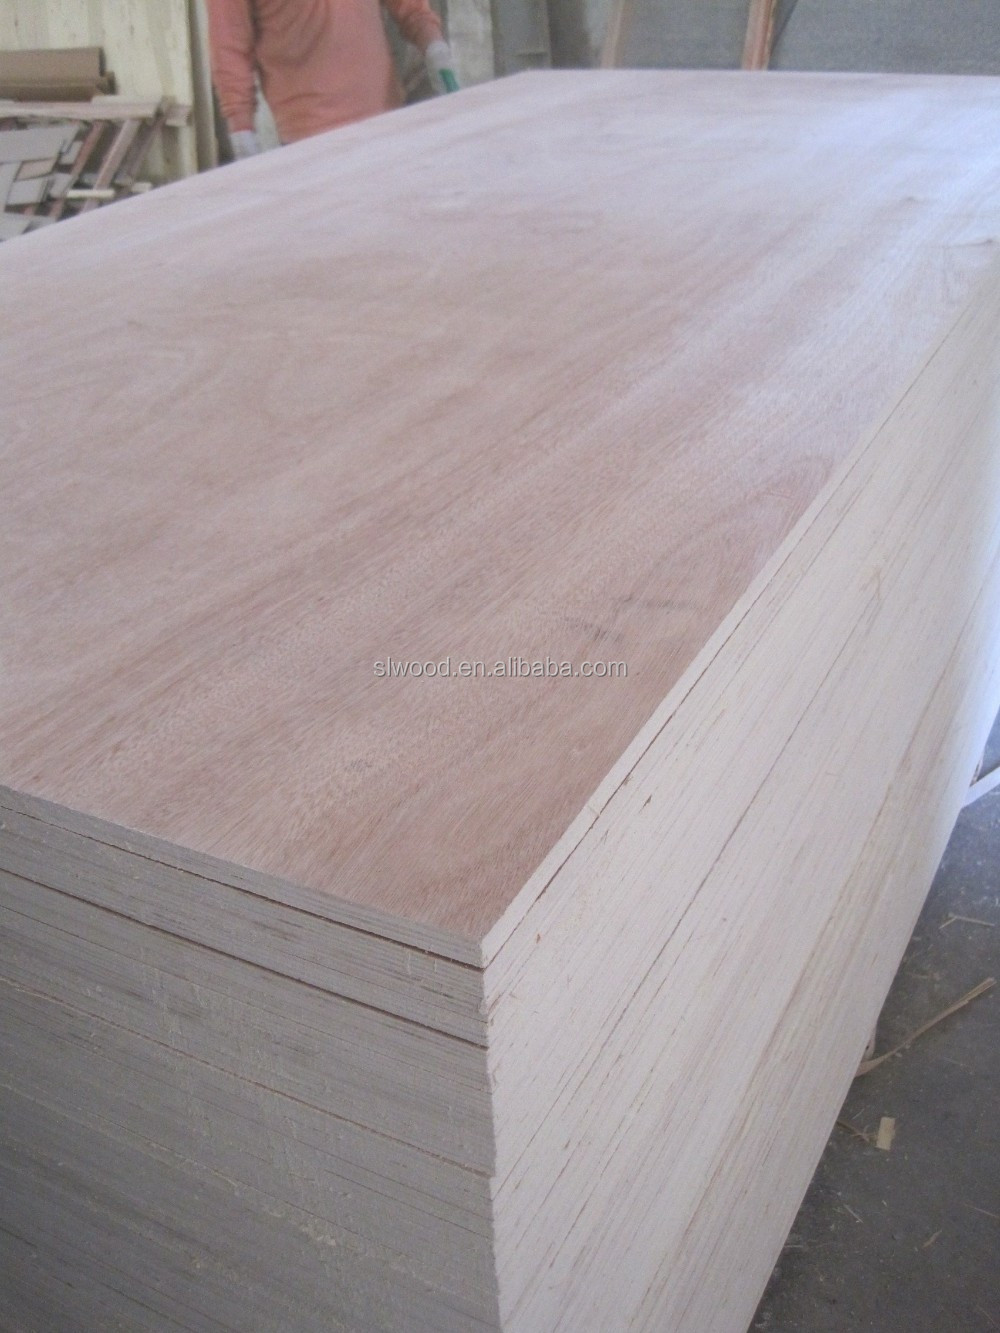 High quality low price 1220x2440 radiata pine veneer for Furniture quality plywood